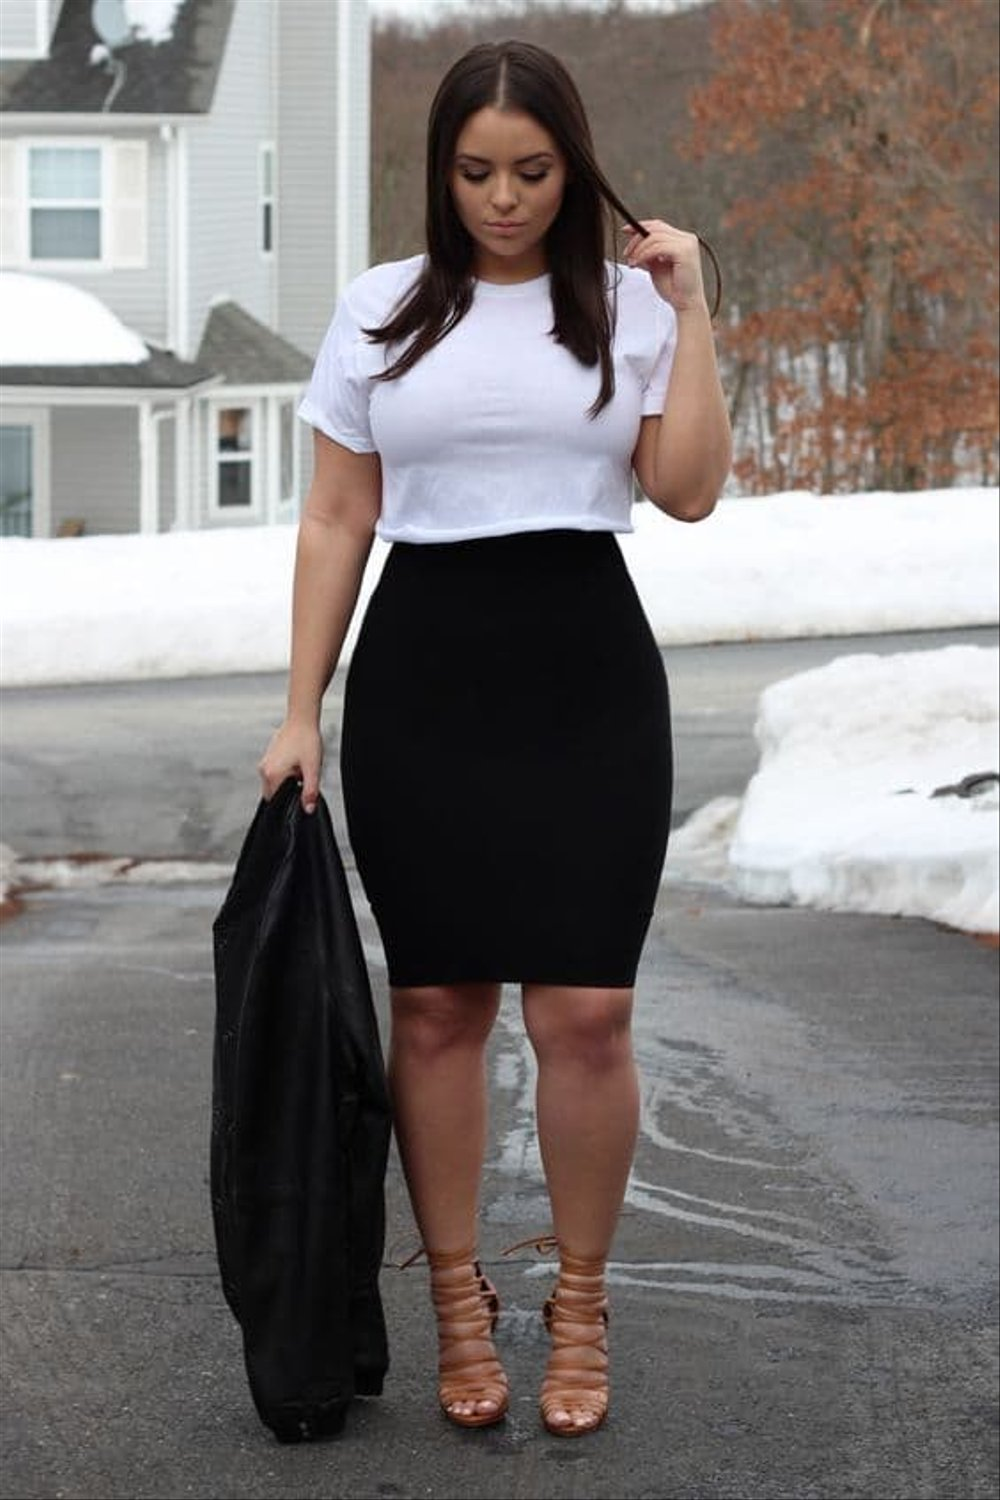 Wear a pencil skirt to make your waist look smaller